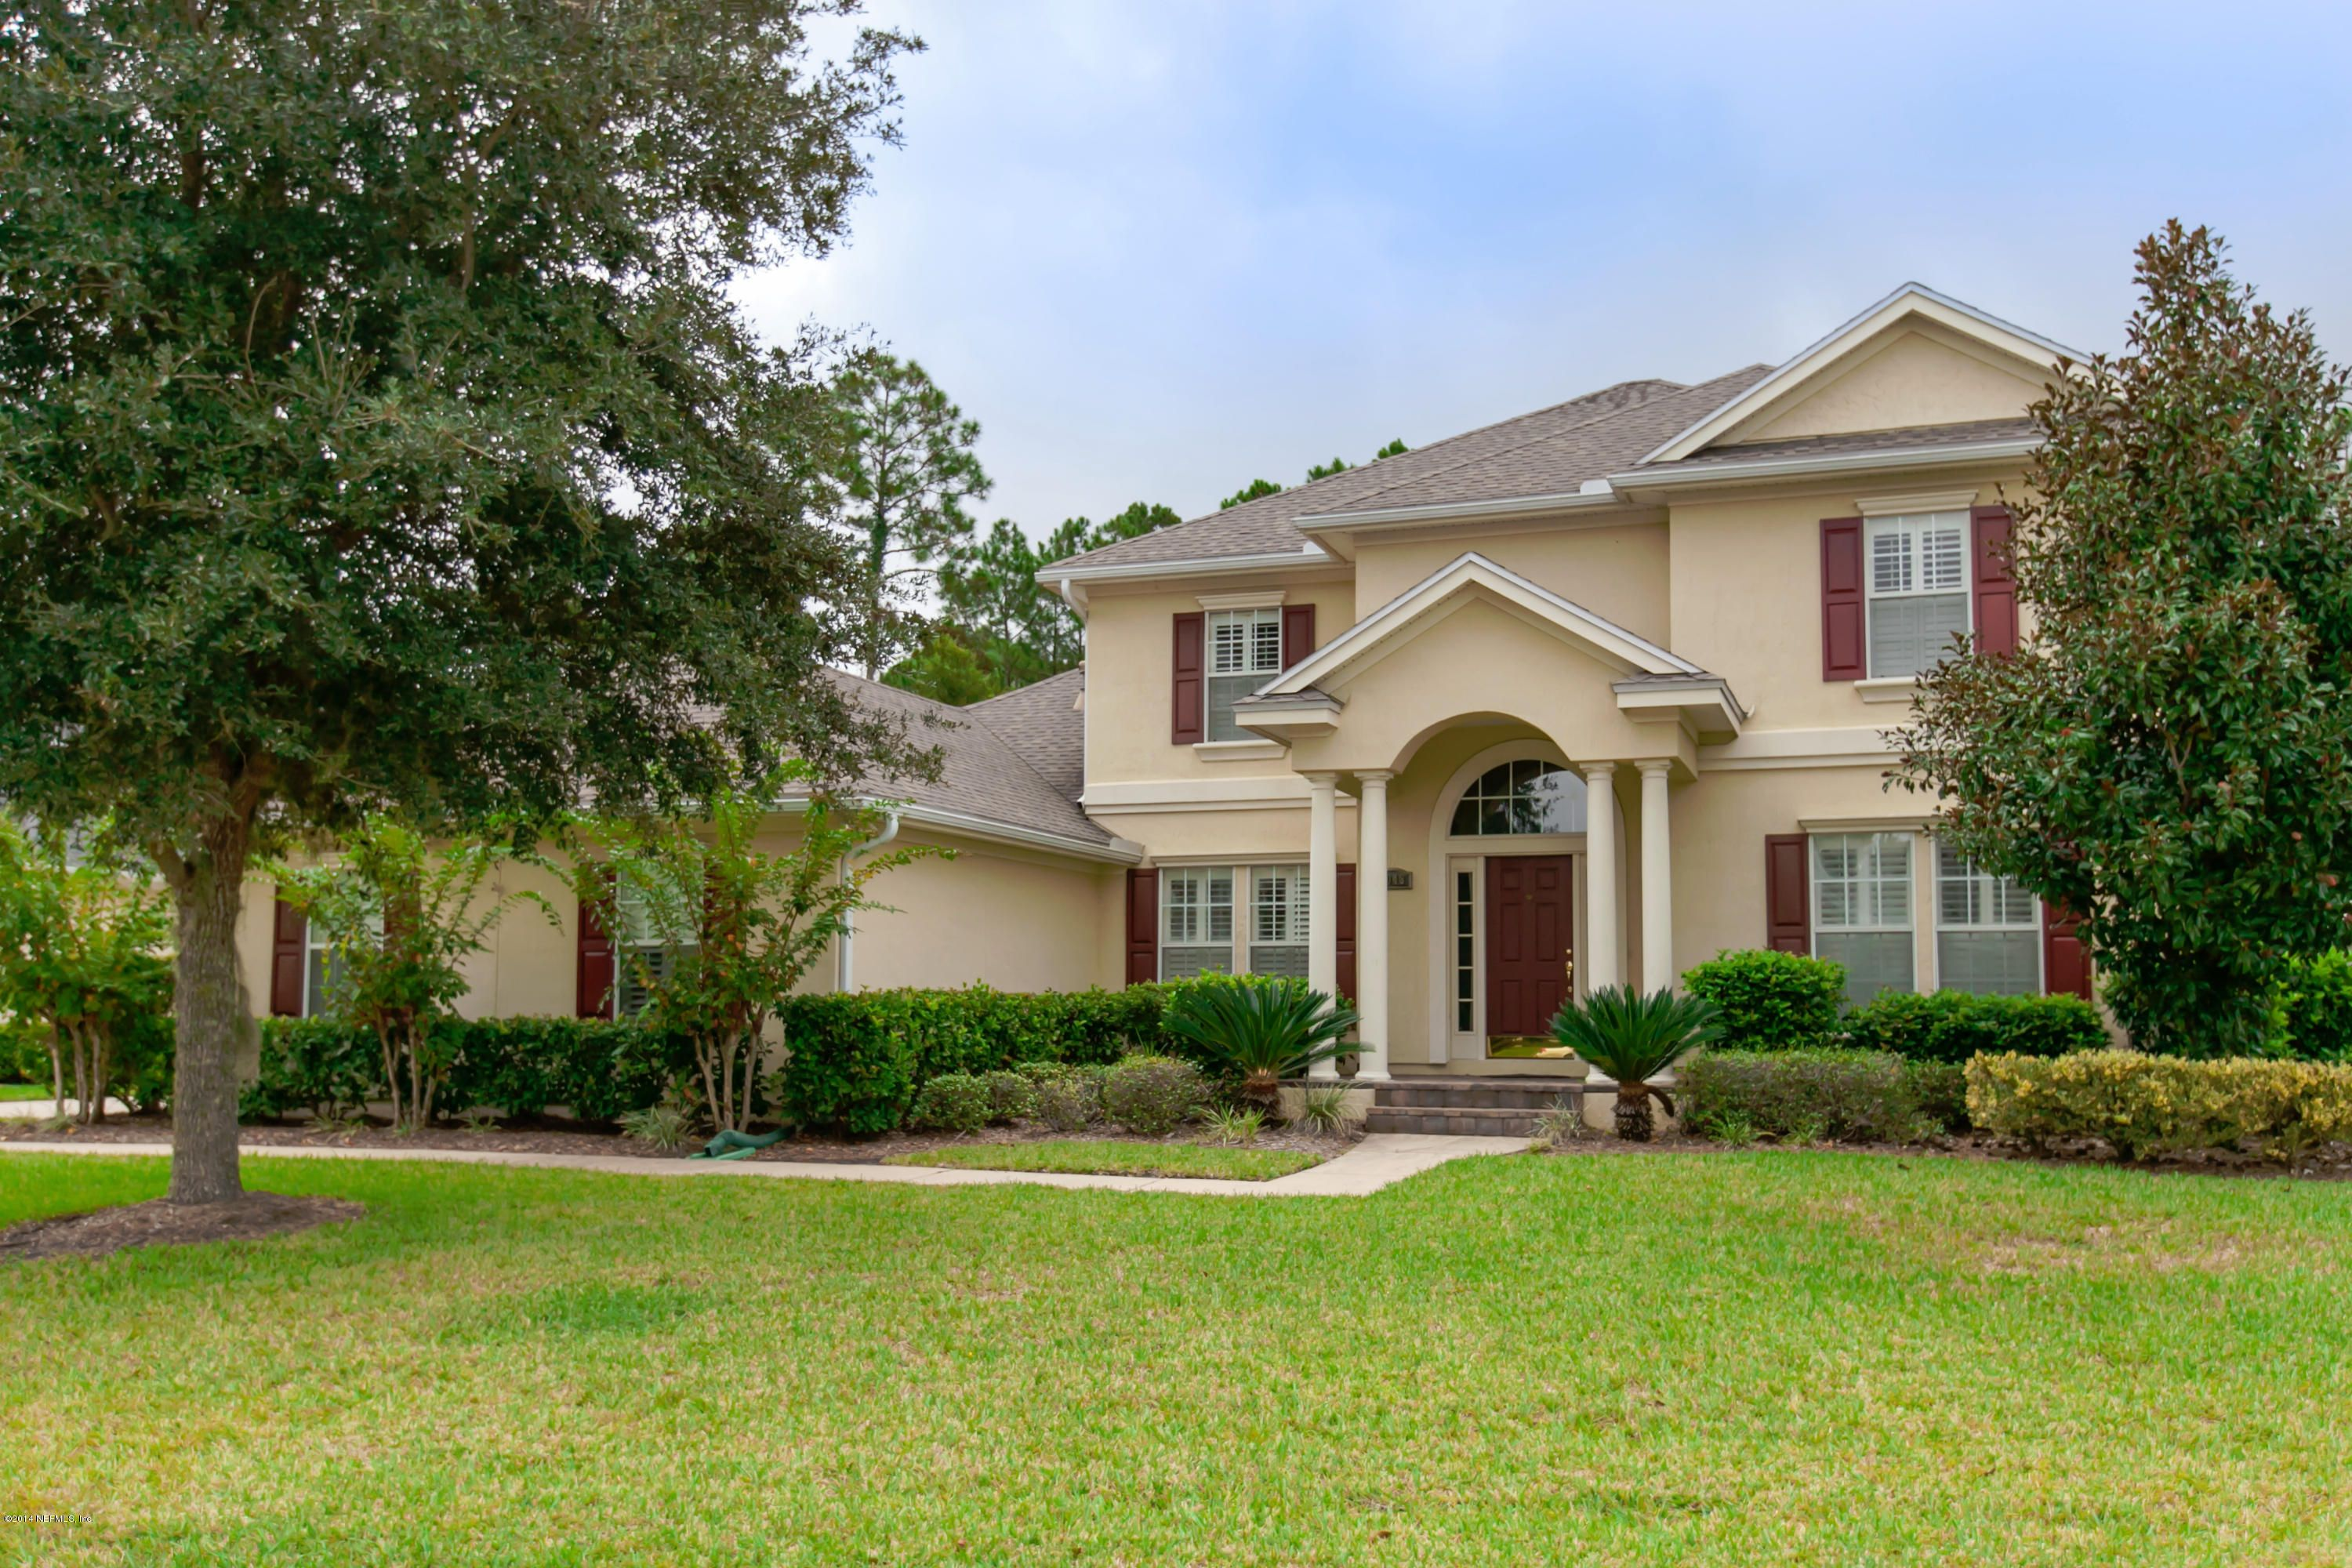 1043 Eagle Point Dr St Augustine Fl 32092 Menton And Ballou Group Menton St Augustine House Styles